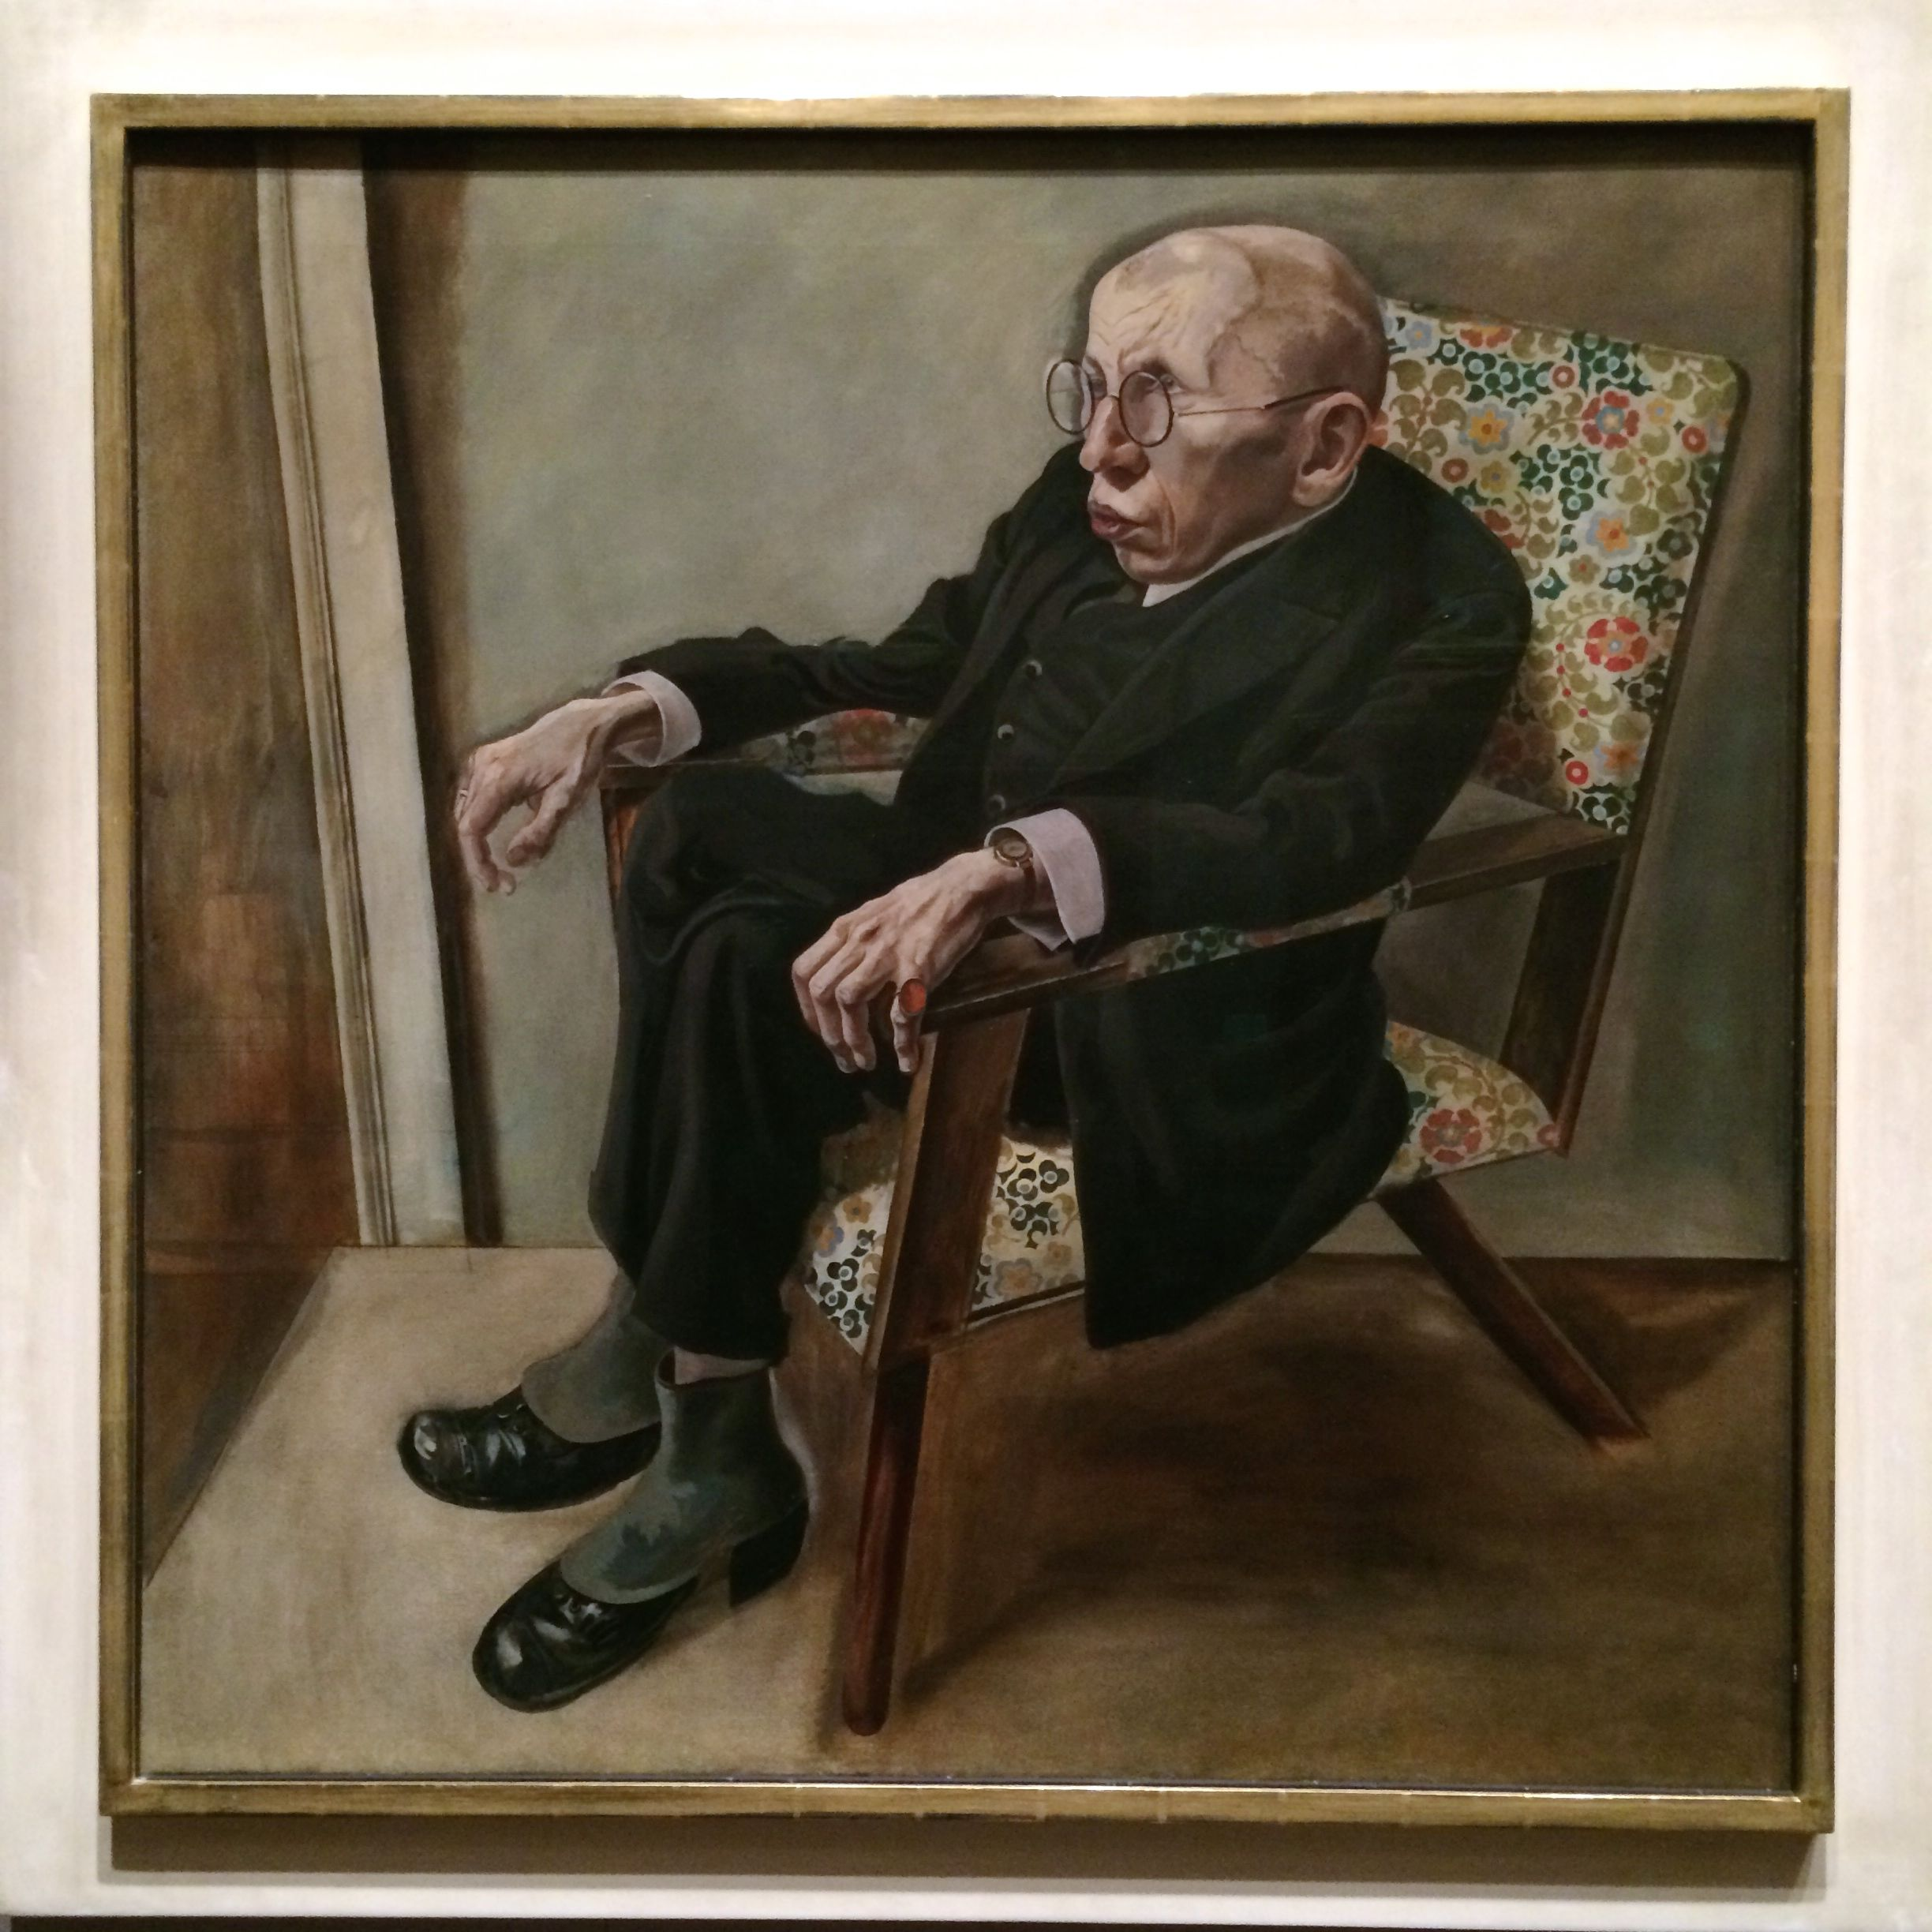 Portrait-of-the-Writer-Max-Herrmann-Neisse-by-George-Grosz-for ...